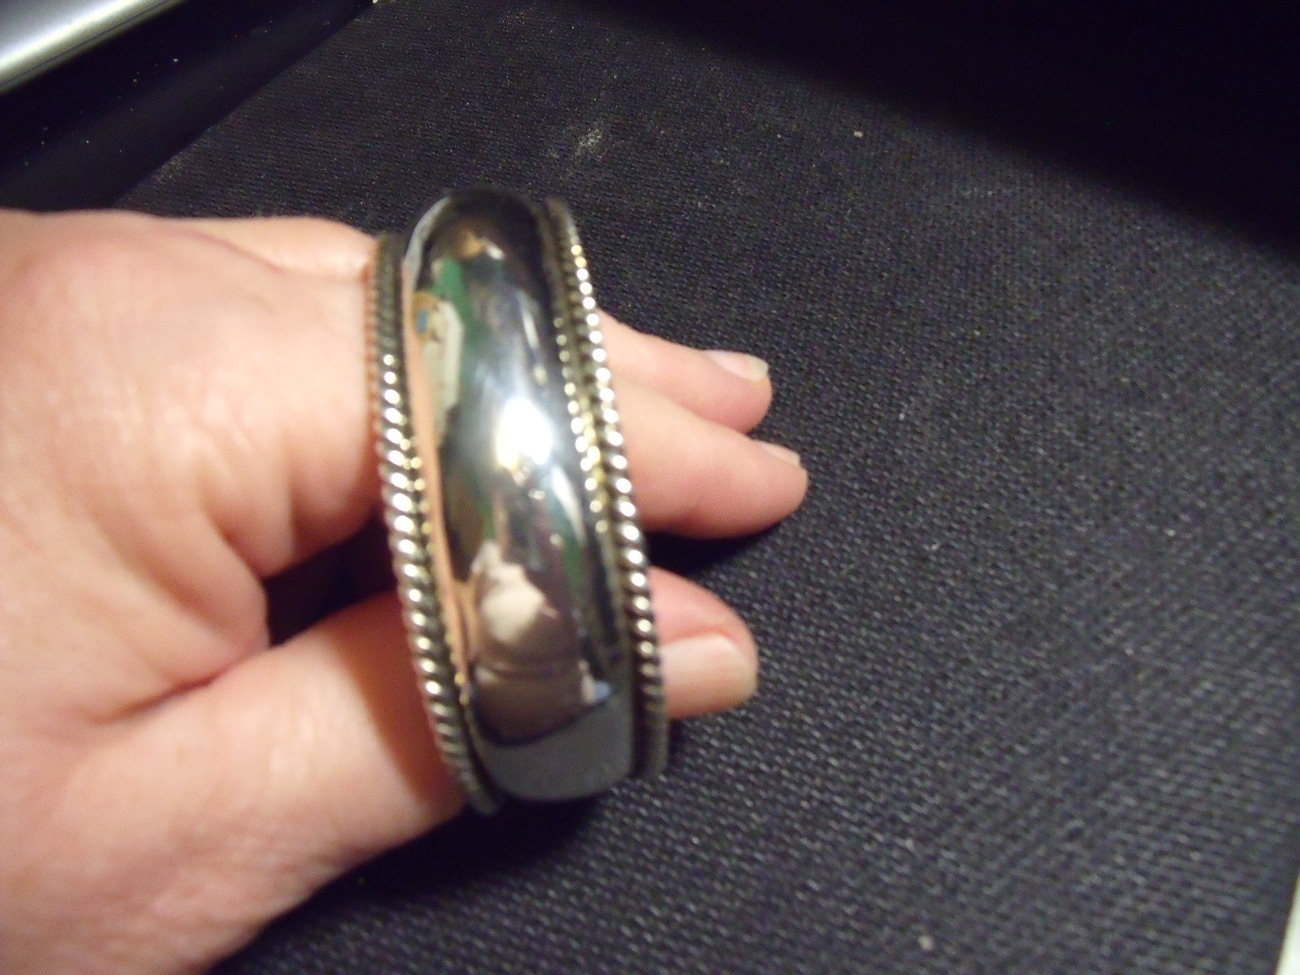 Sterling silver cuff bracelet with beaded trim